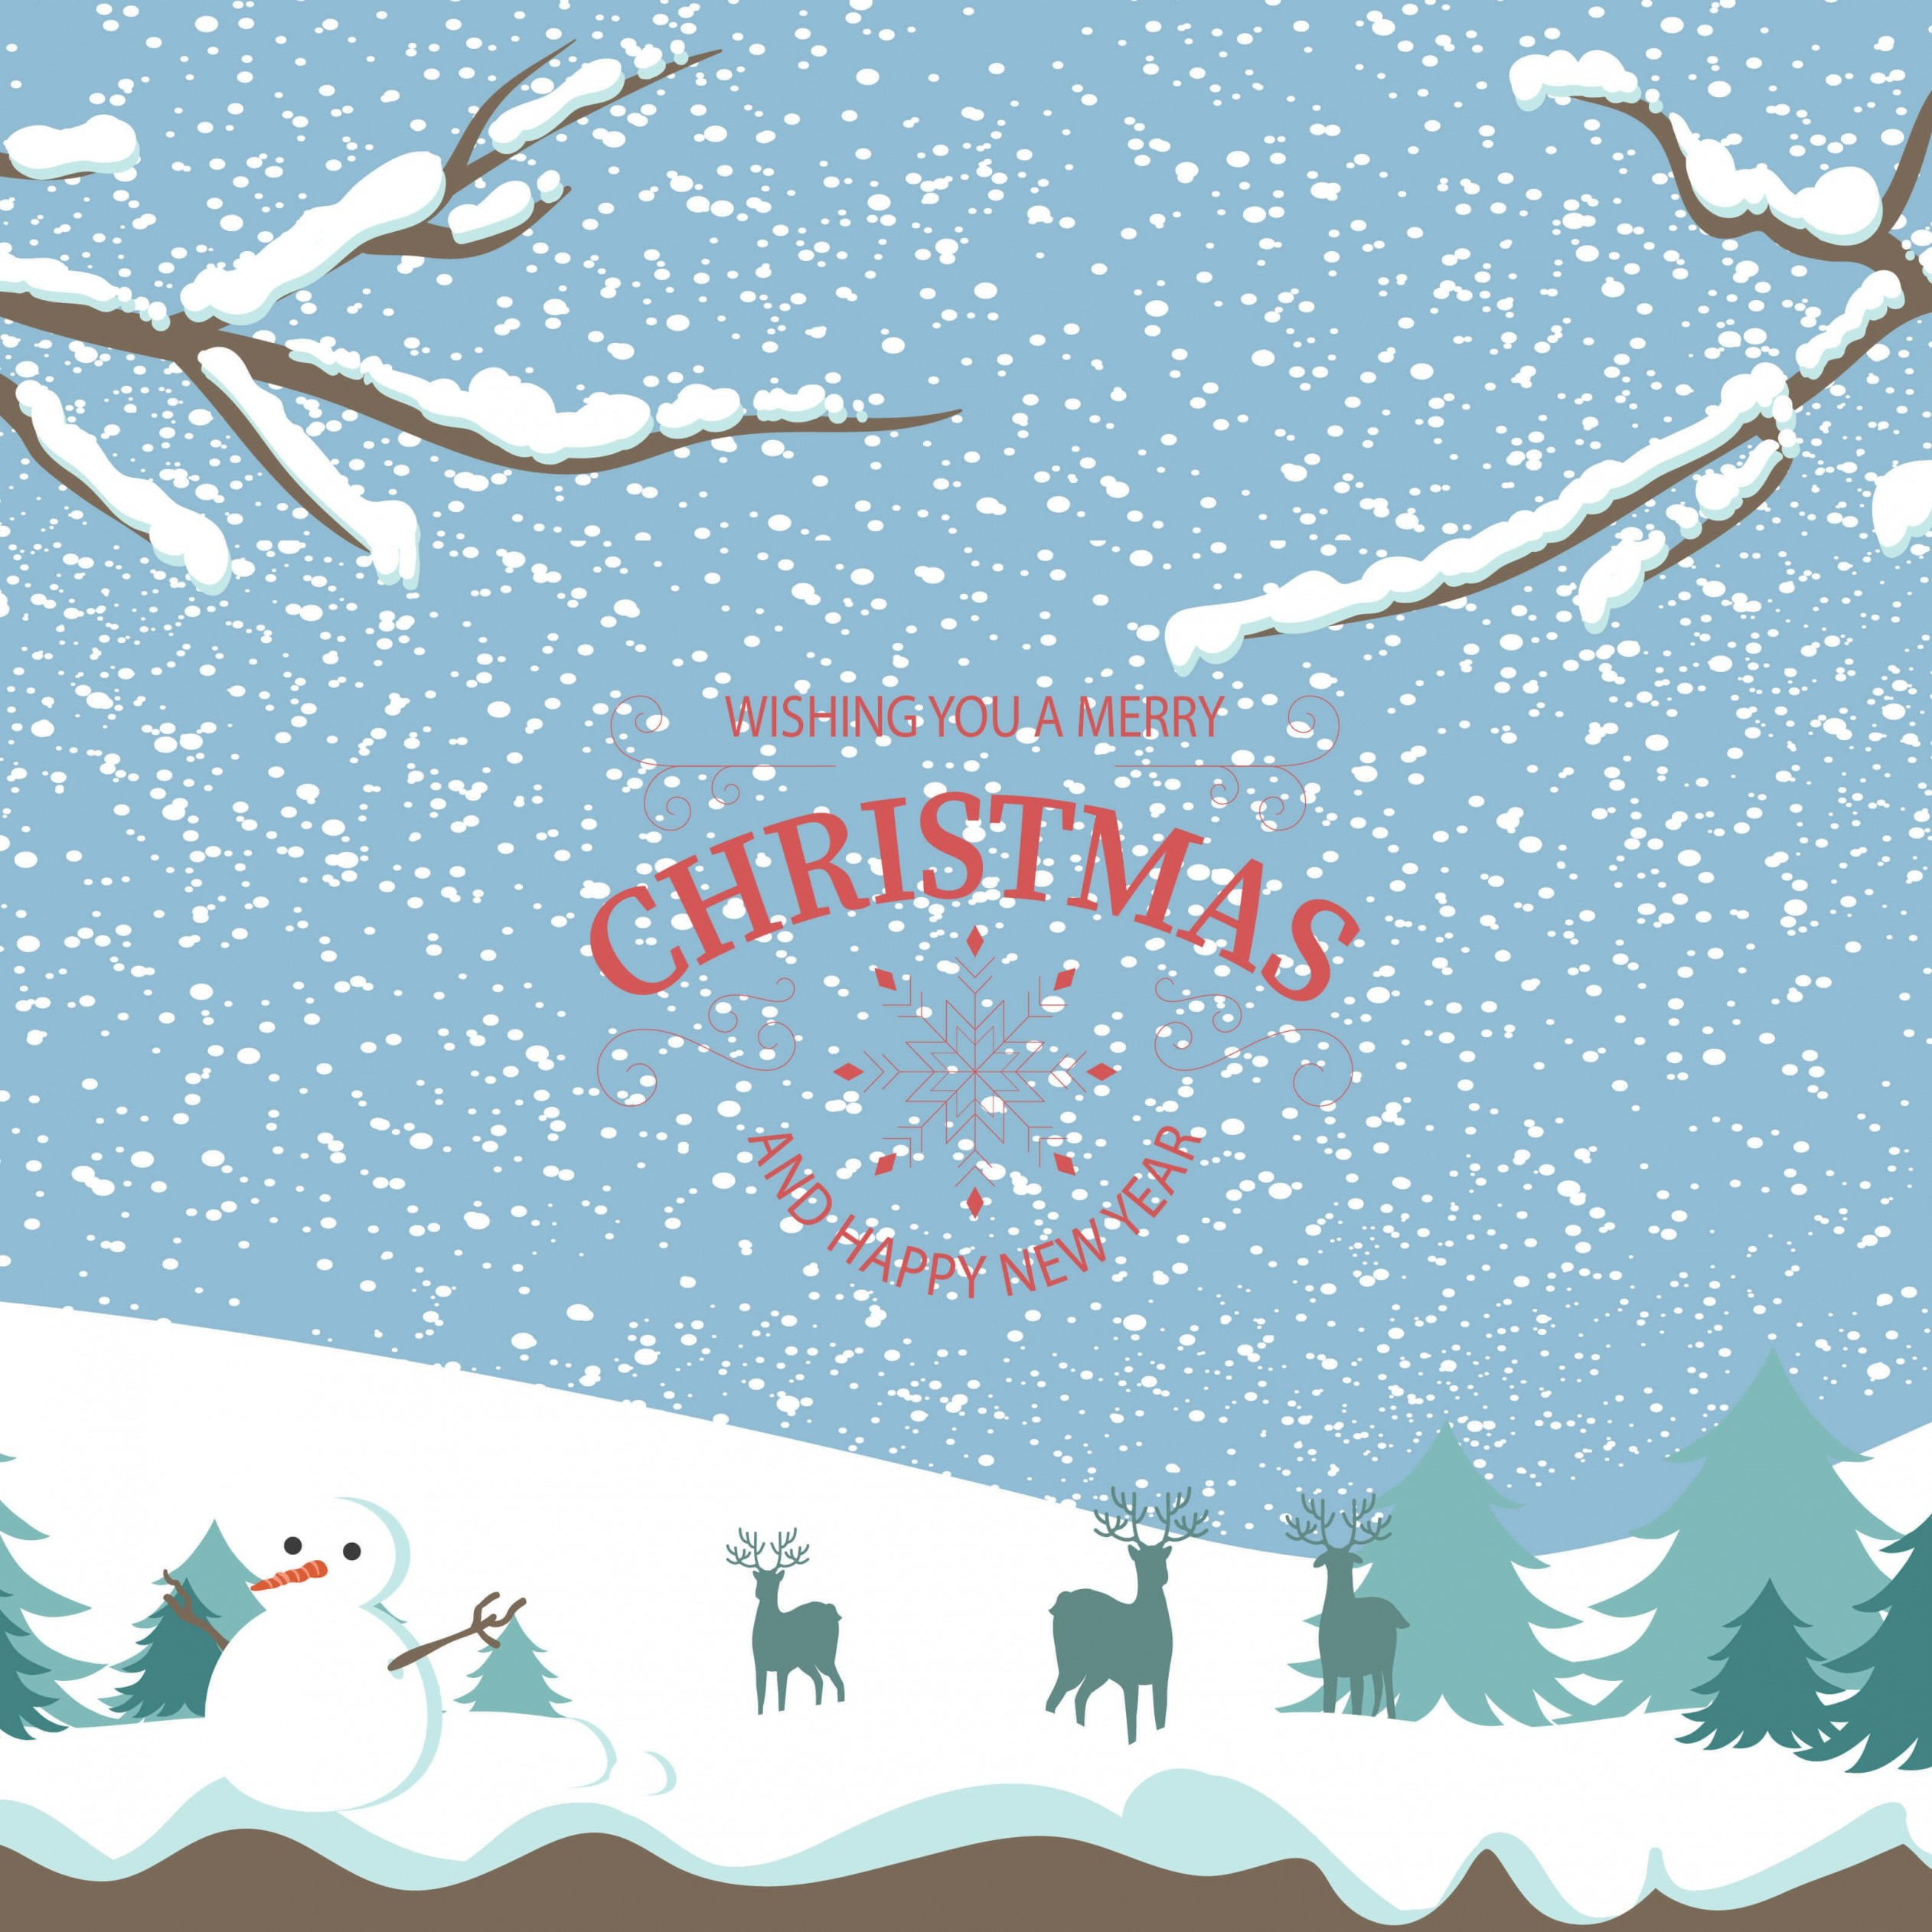 Merry Christmas Illustration Wallpaper for Apple iPad 3